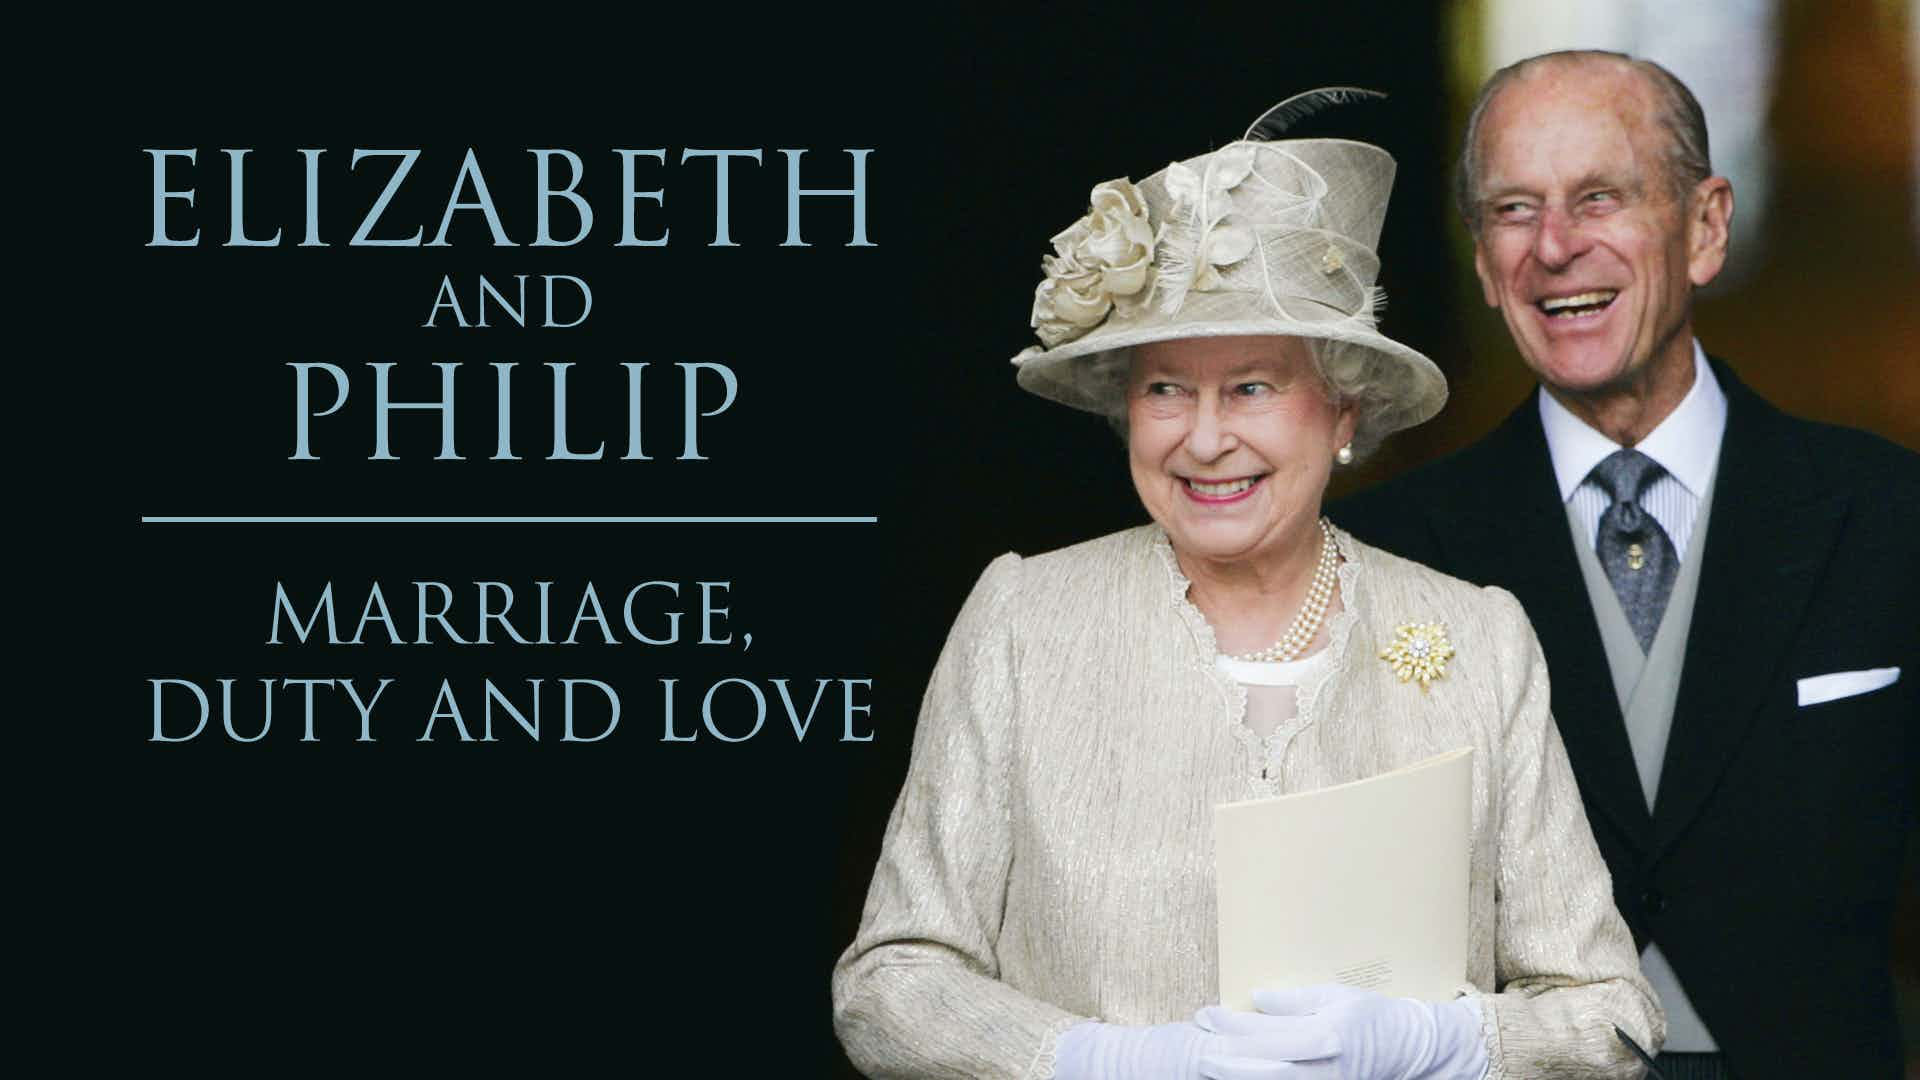 The Royals Revealed: Elizabeth and Philip